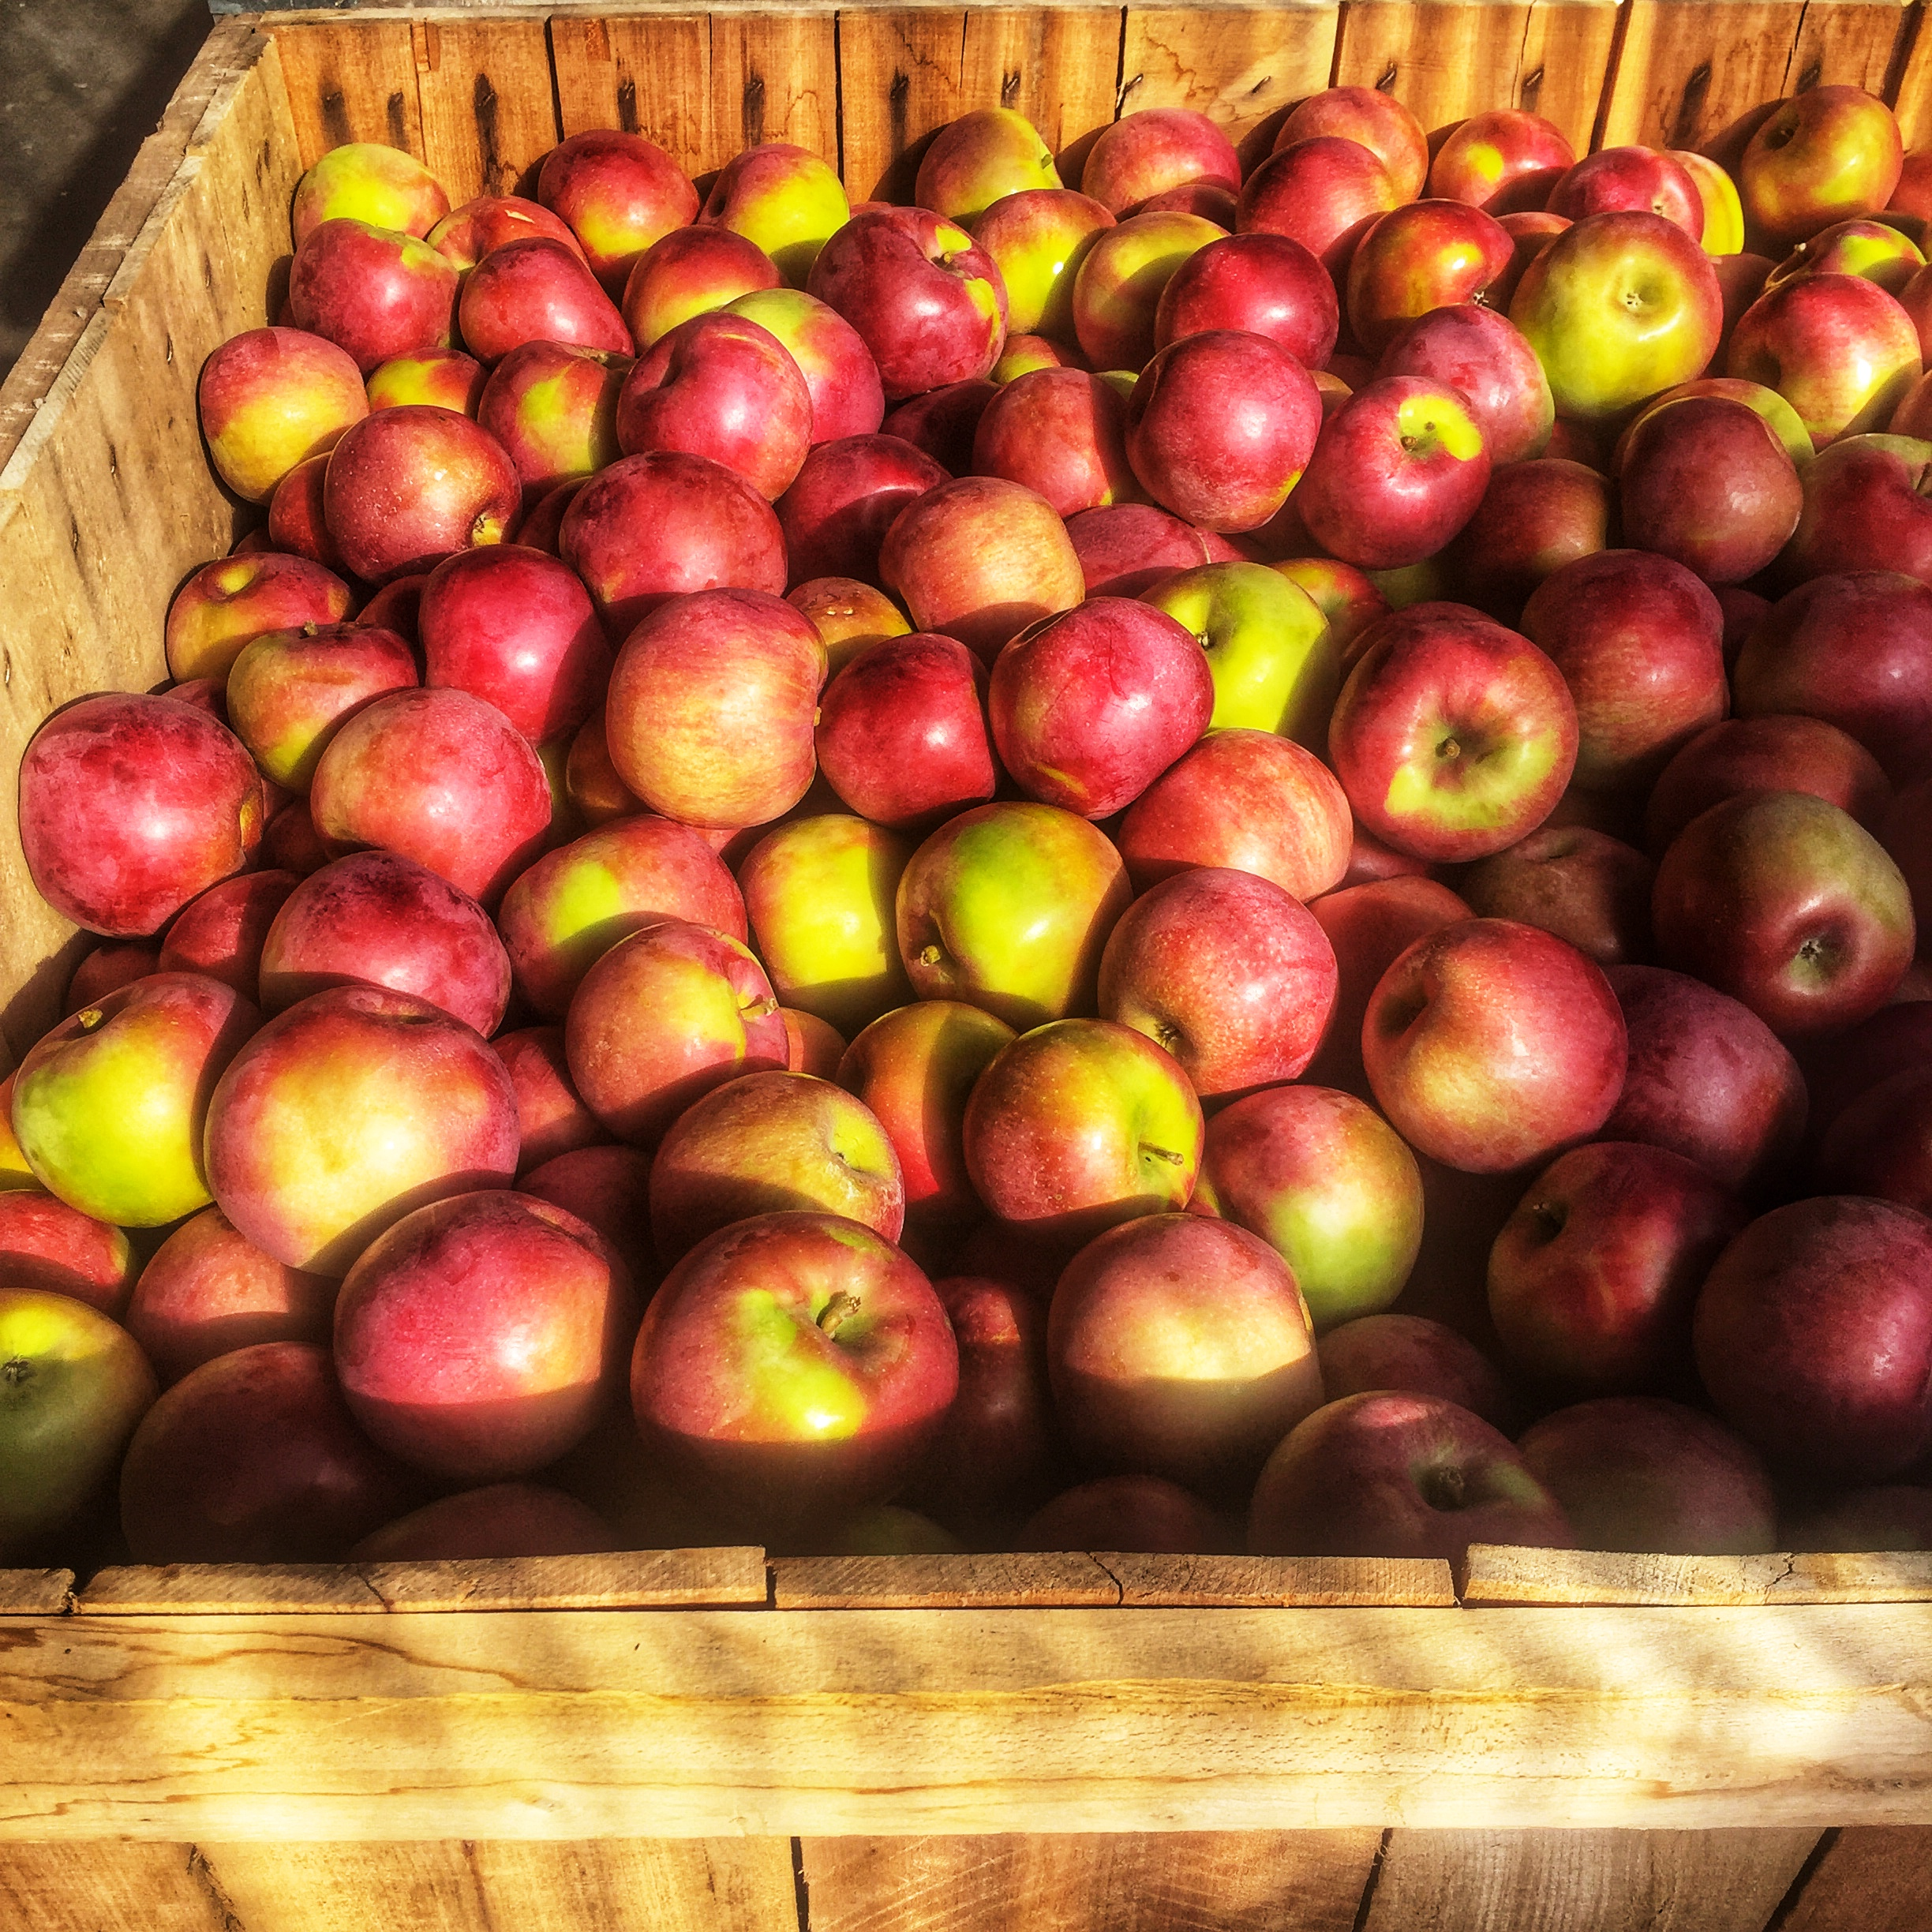 Locally grown apples at Russo's